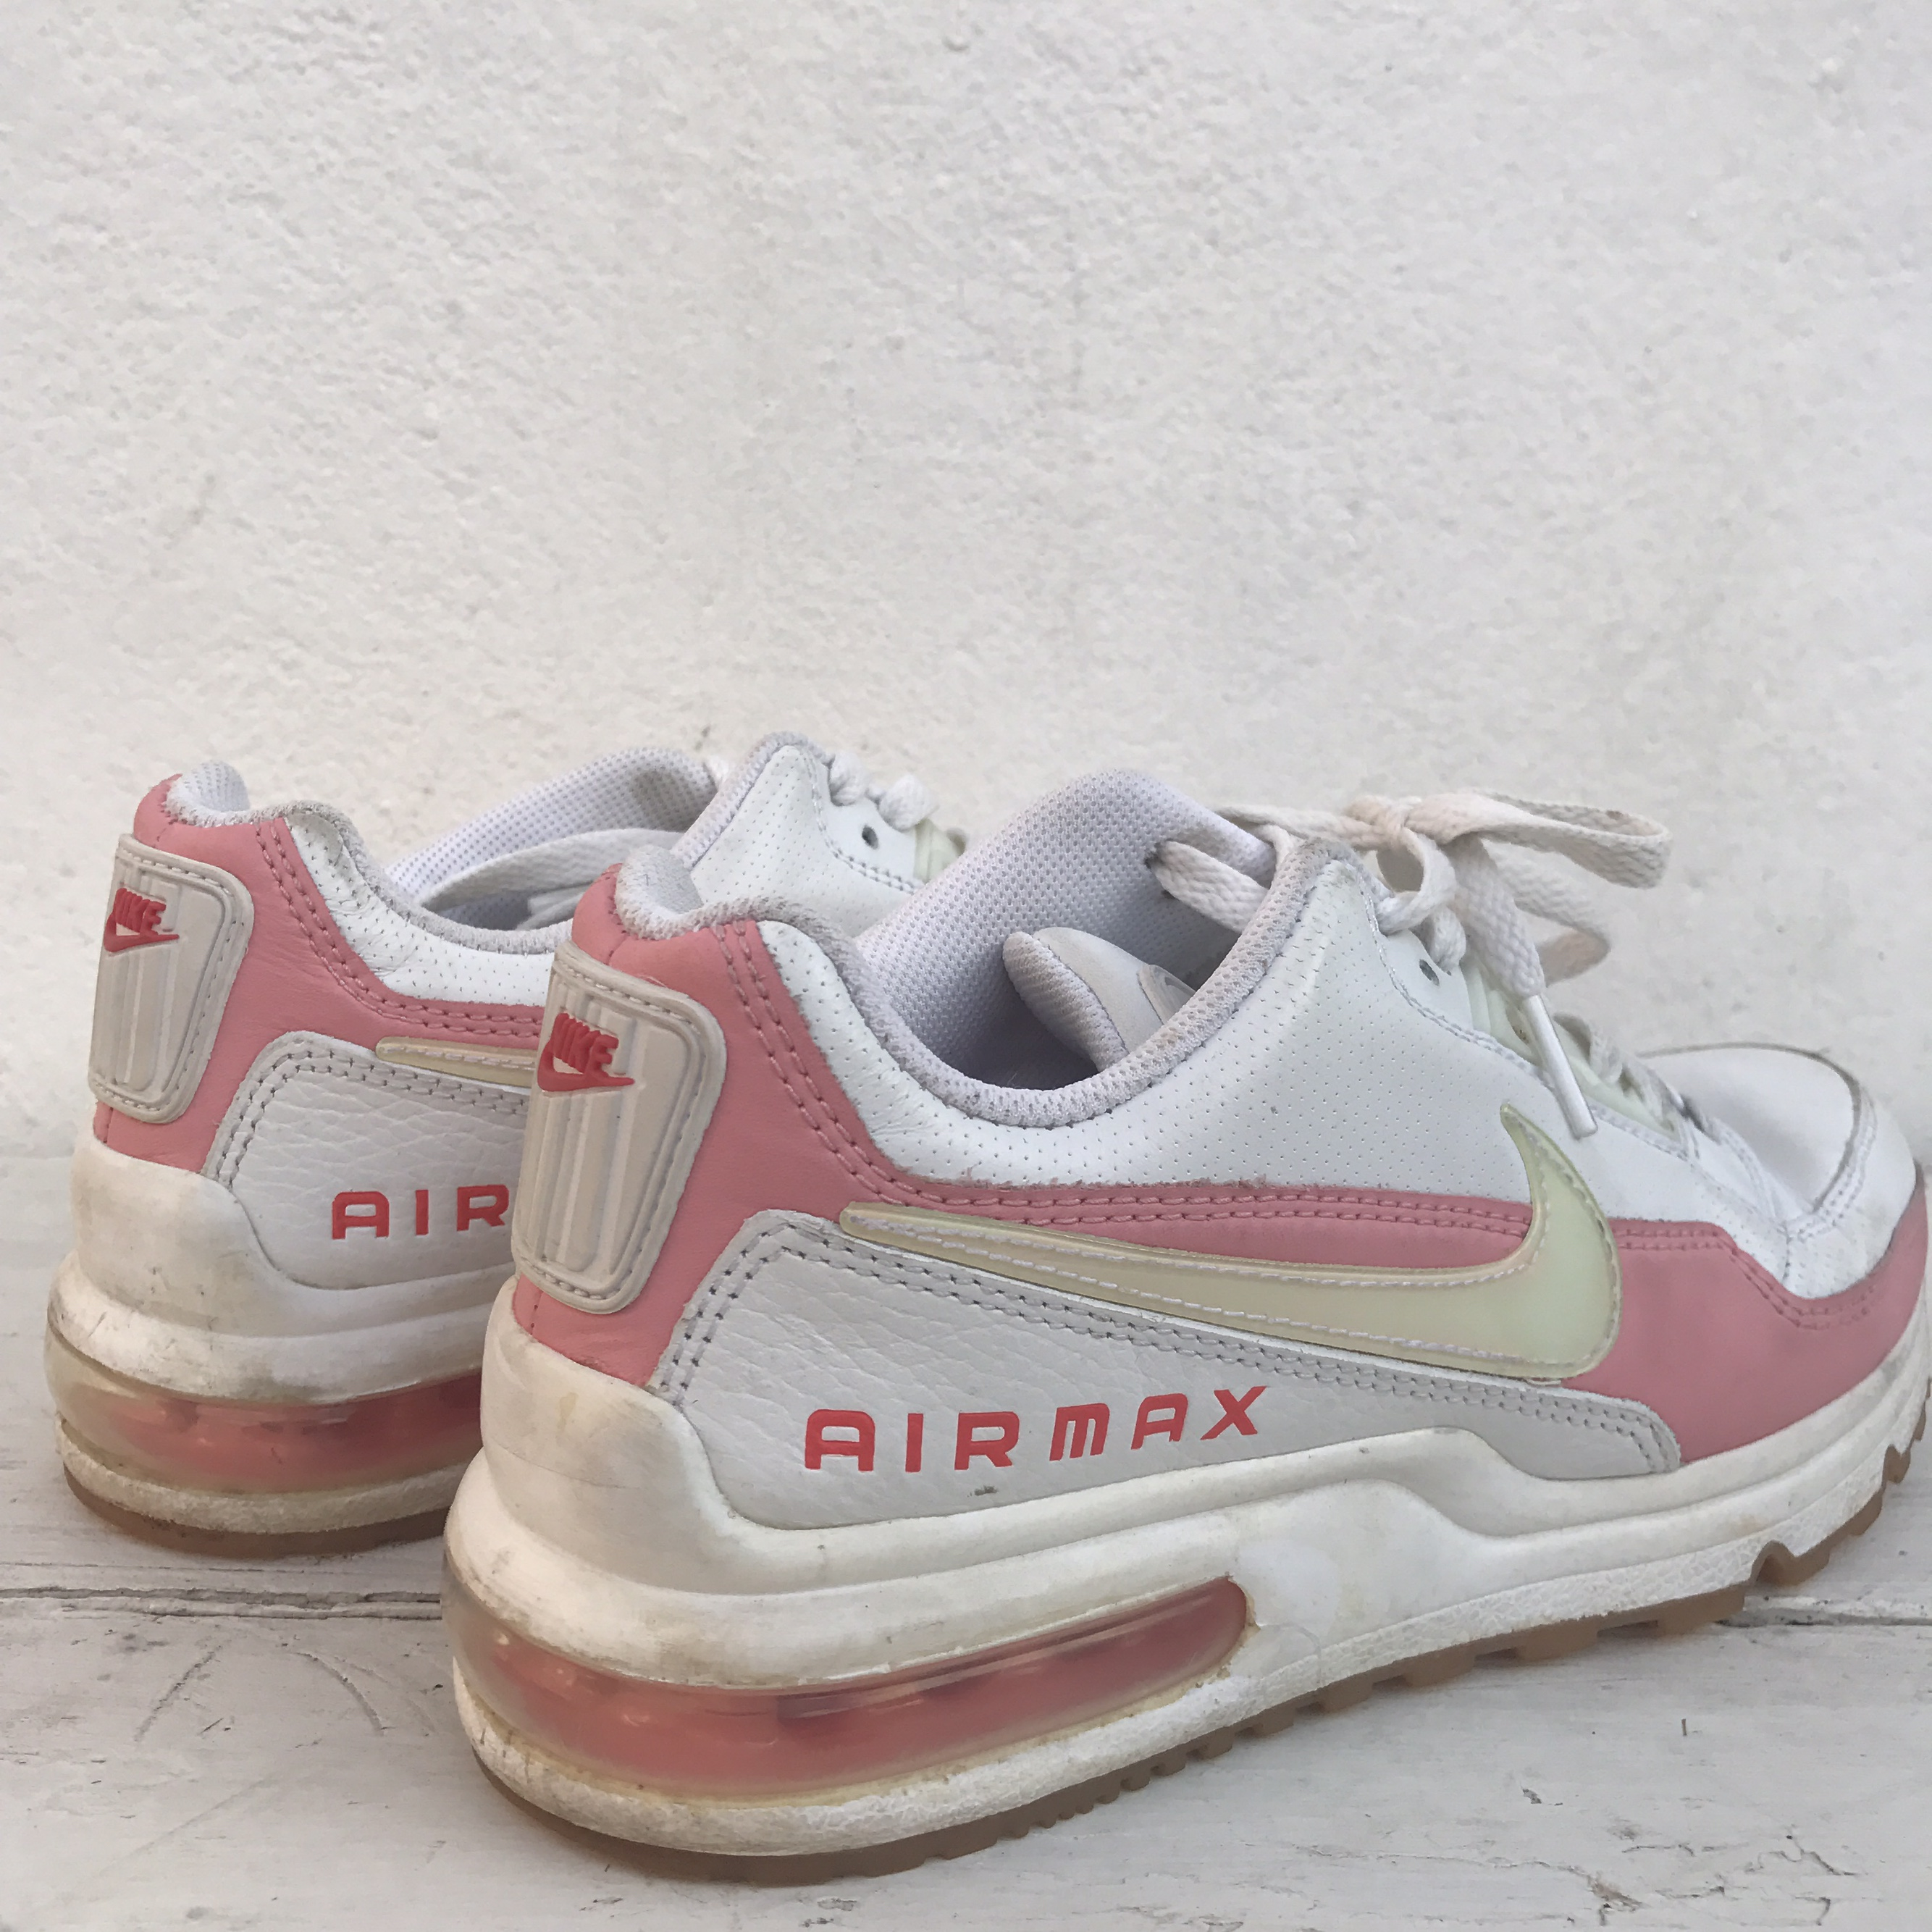 Vintage Nike Air Max 180 Trainers • white and Depop